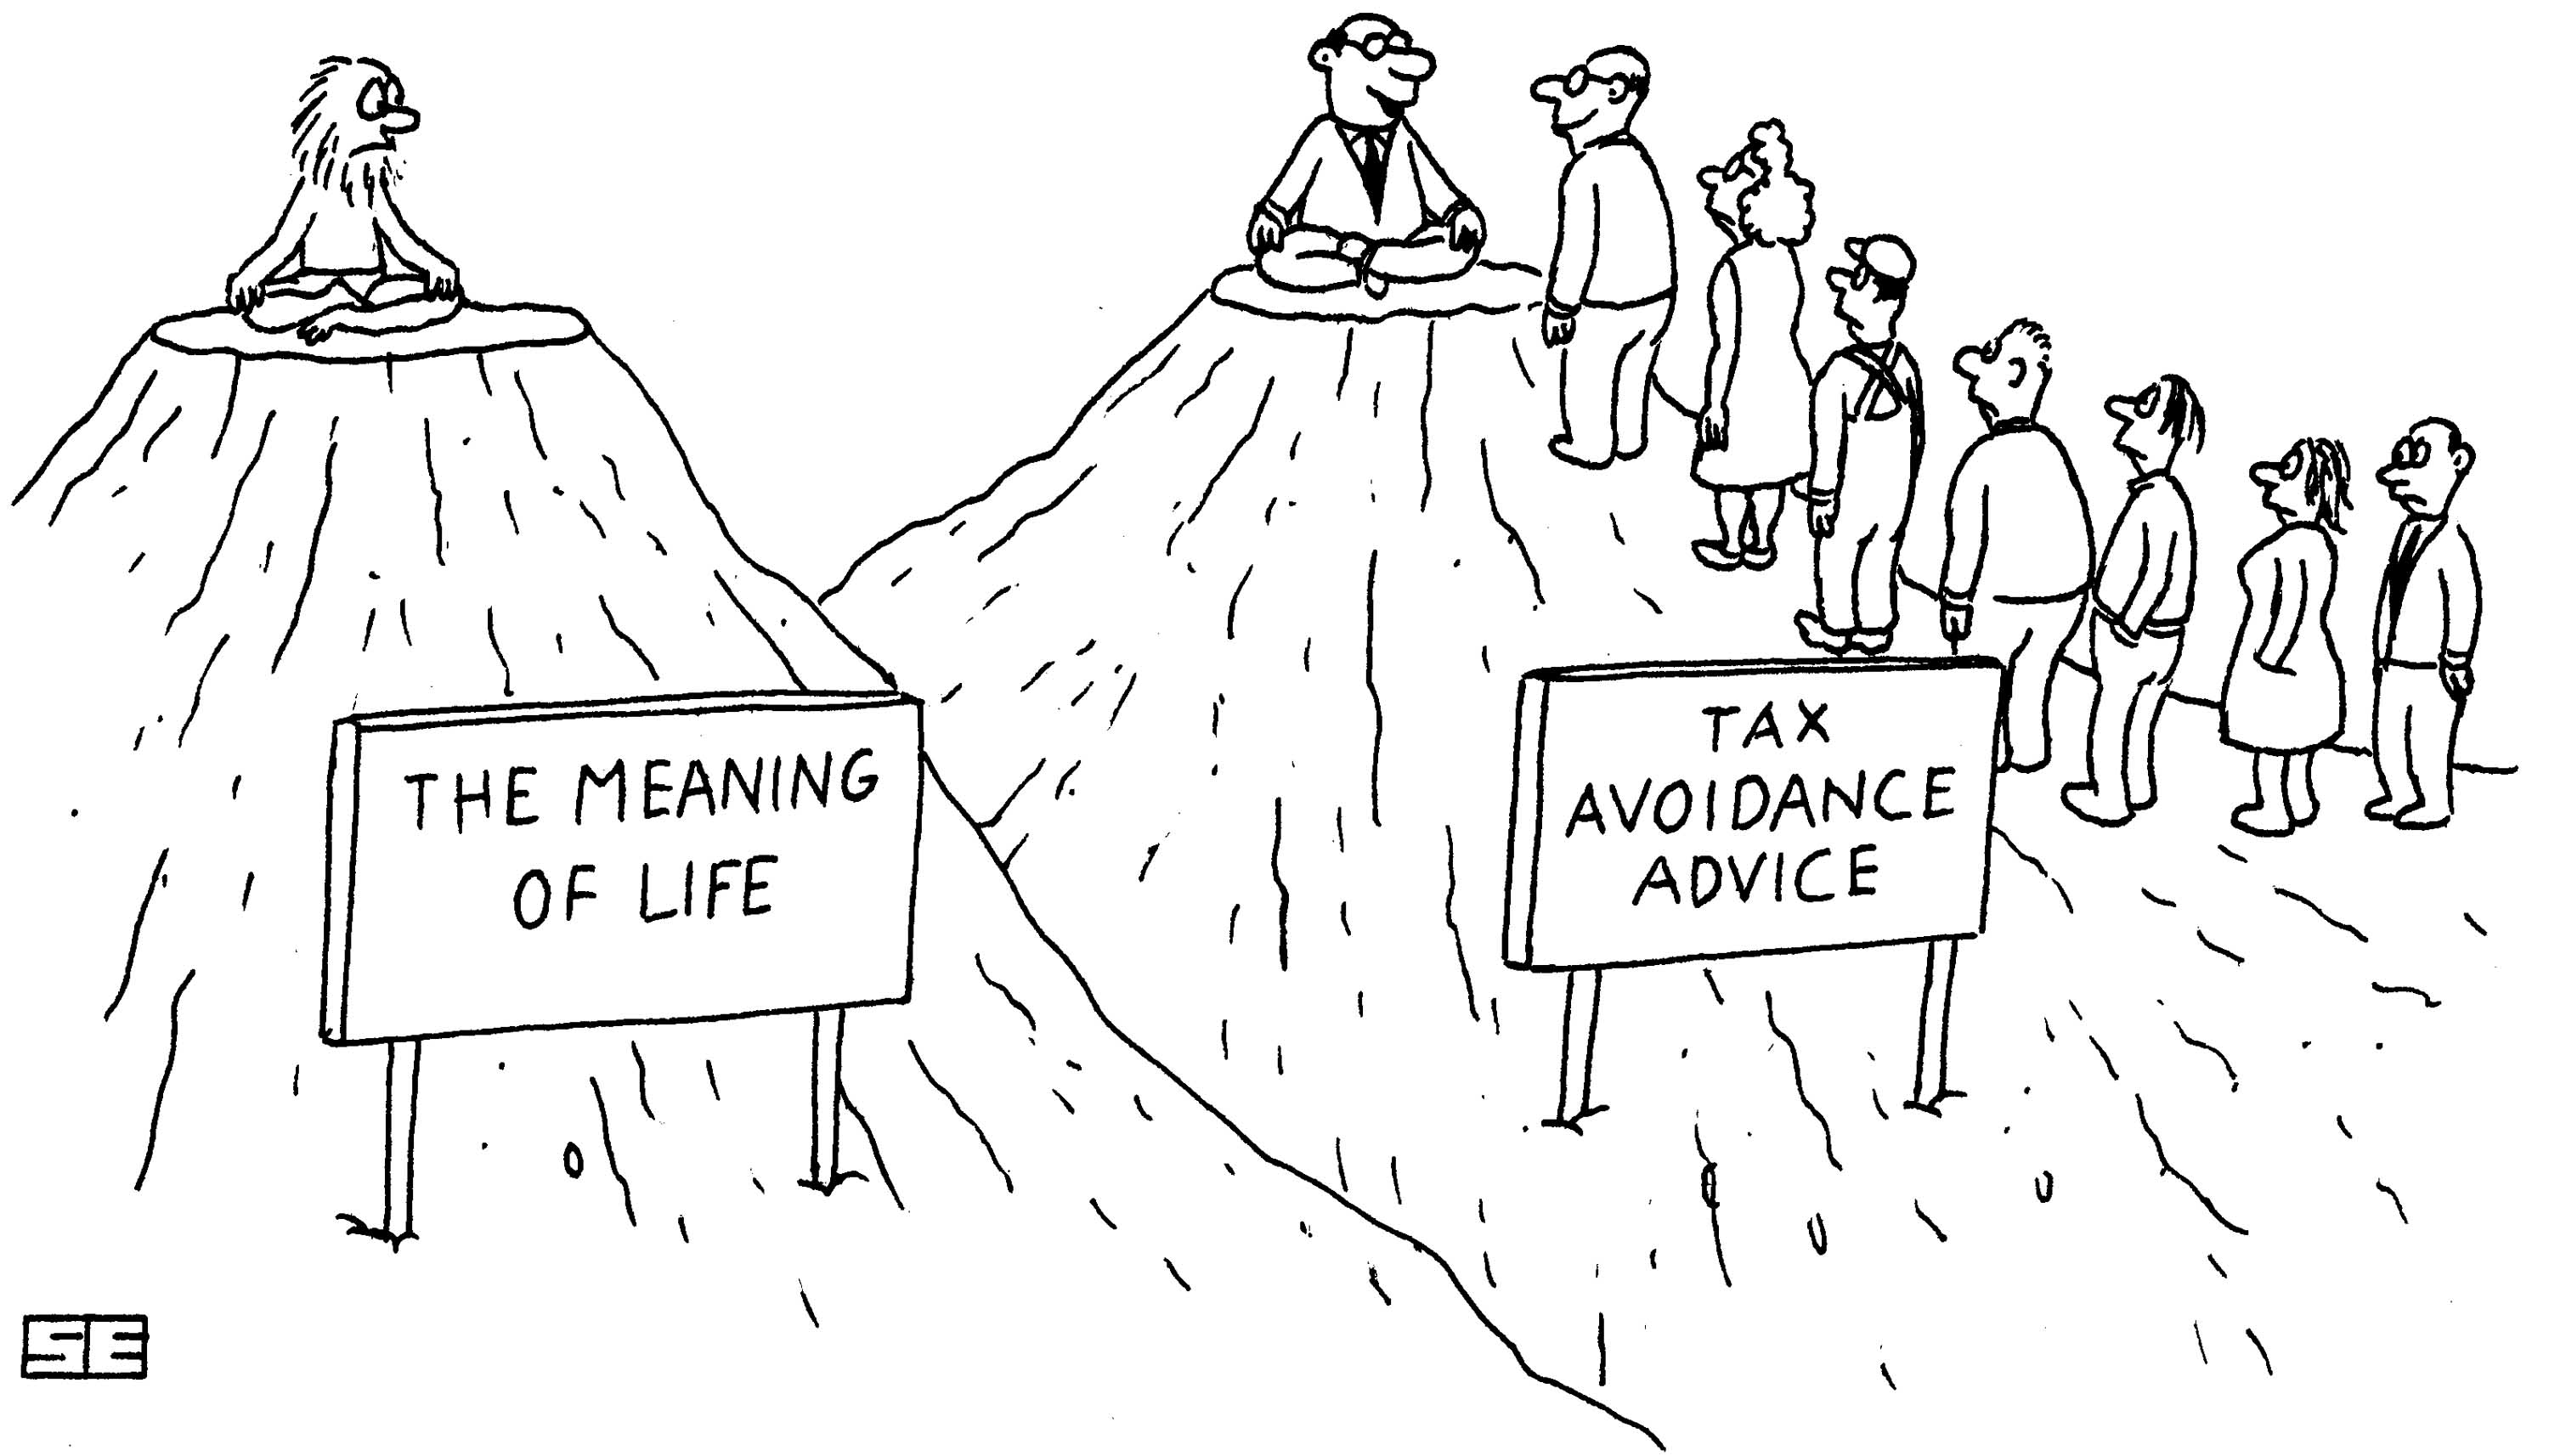 meaning of life vs. tax avoidance advice